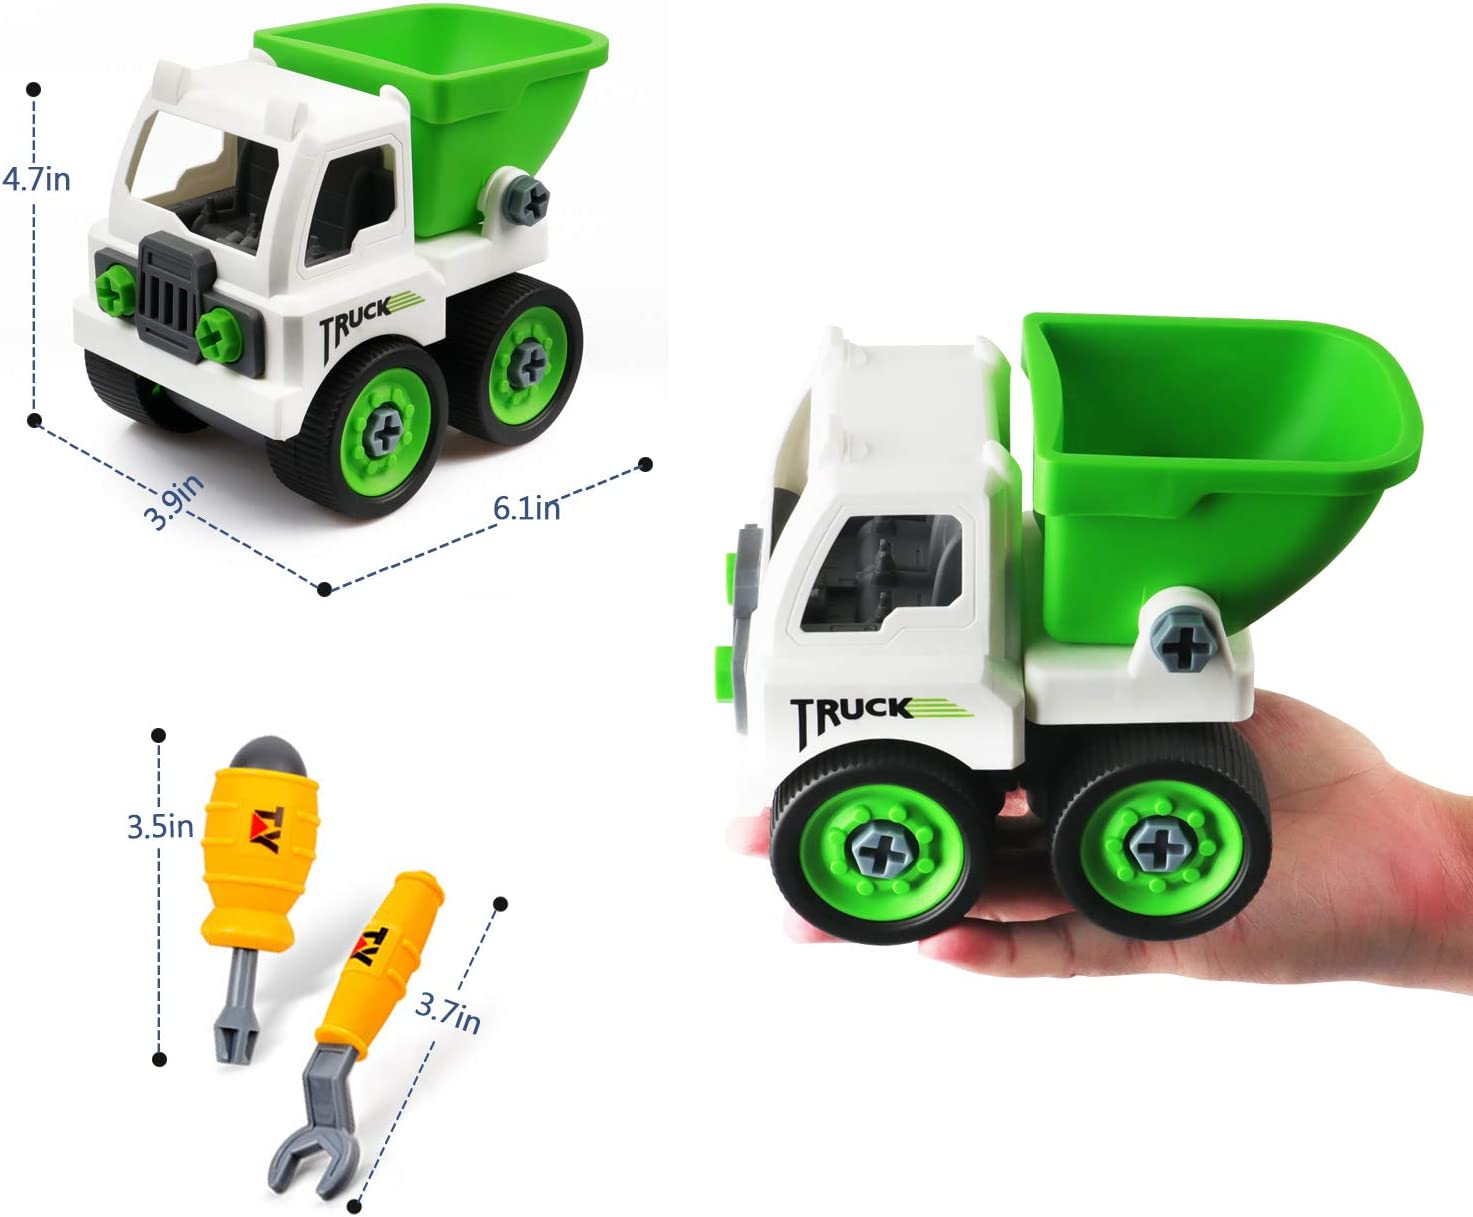 Building Toys for Kids Ages 4-8,Tipper Digger Toys for Boys Age 6 Excavator Construction Toys for 3 Year Old boy Gifts Trucks for 3 Year Old Boys Birthday Gift for 3-10 Year Old Girls Yellow